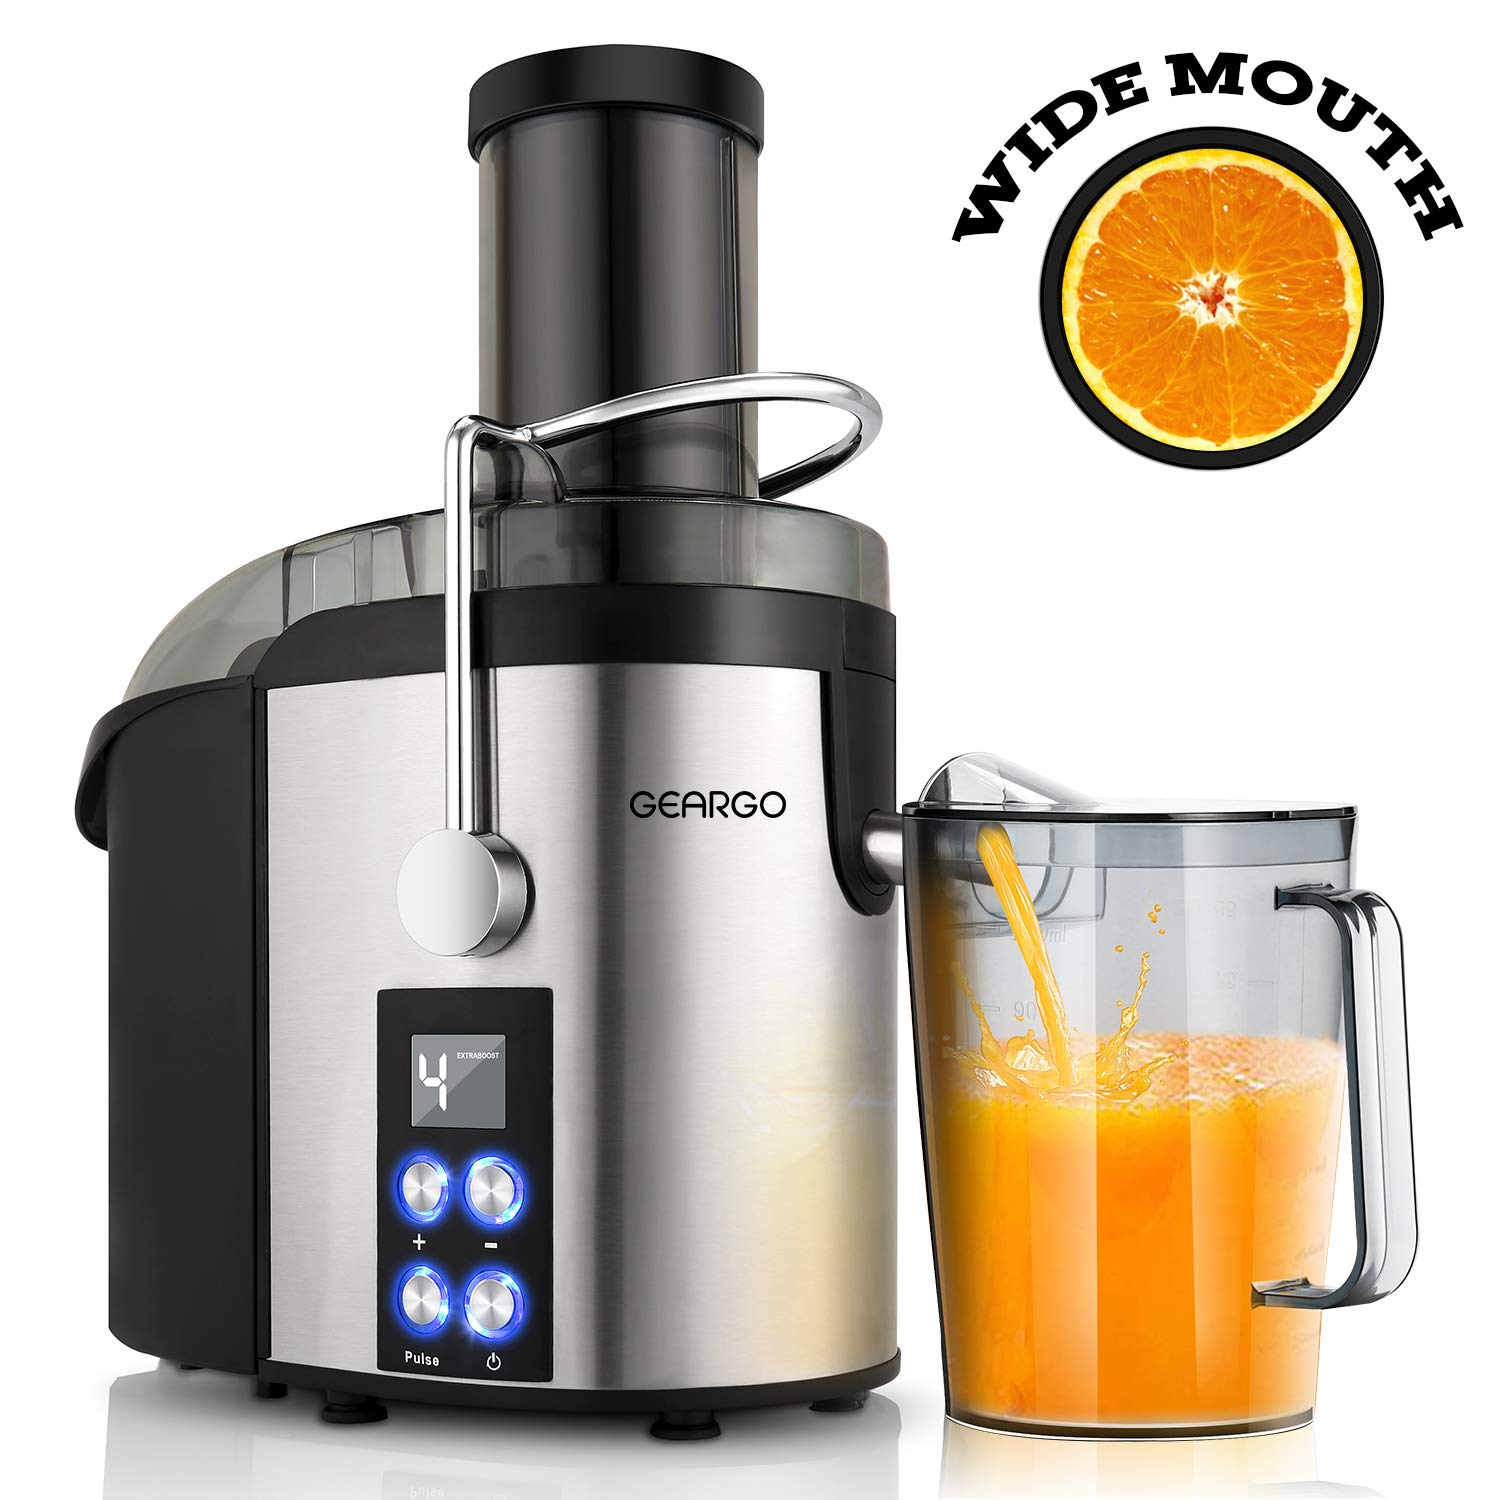 Newest LED Display and 4-Speed Centrifugal Juicer Juicer 800W Power Juicer Machine for Fruits and Vegetable GEARGO Juice Extractor with 75mm Wide Mouth